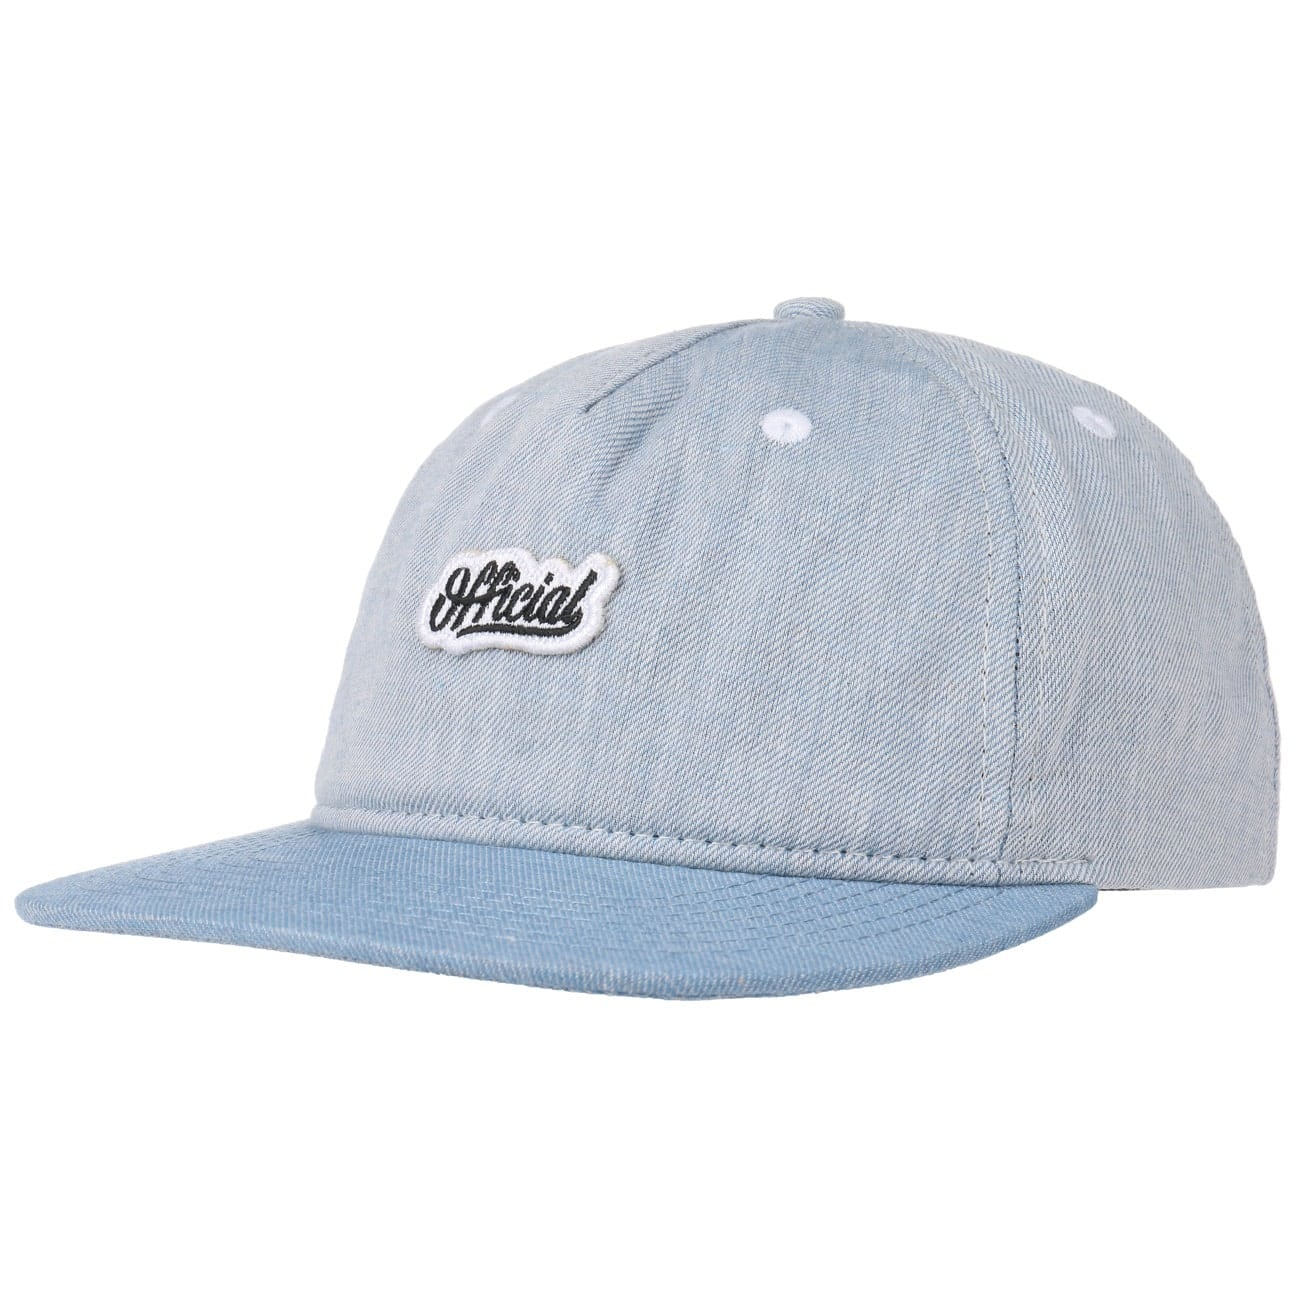 Casquette Stitched by Official Headwear  baseball cap